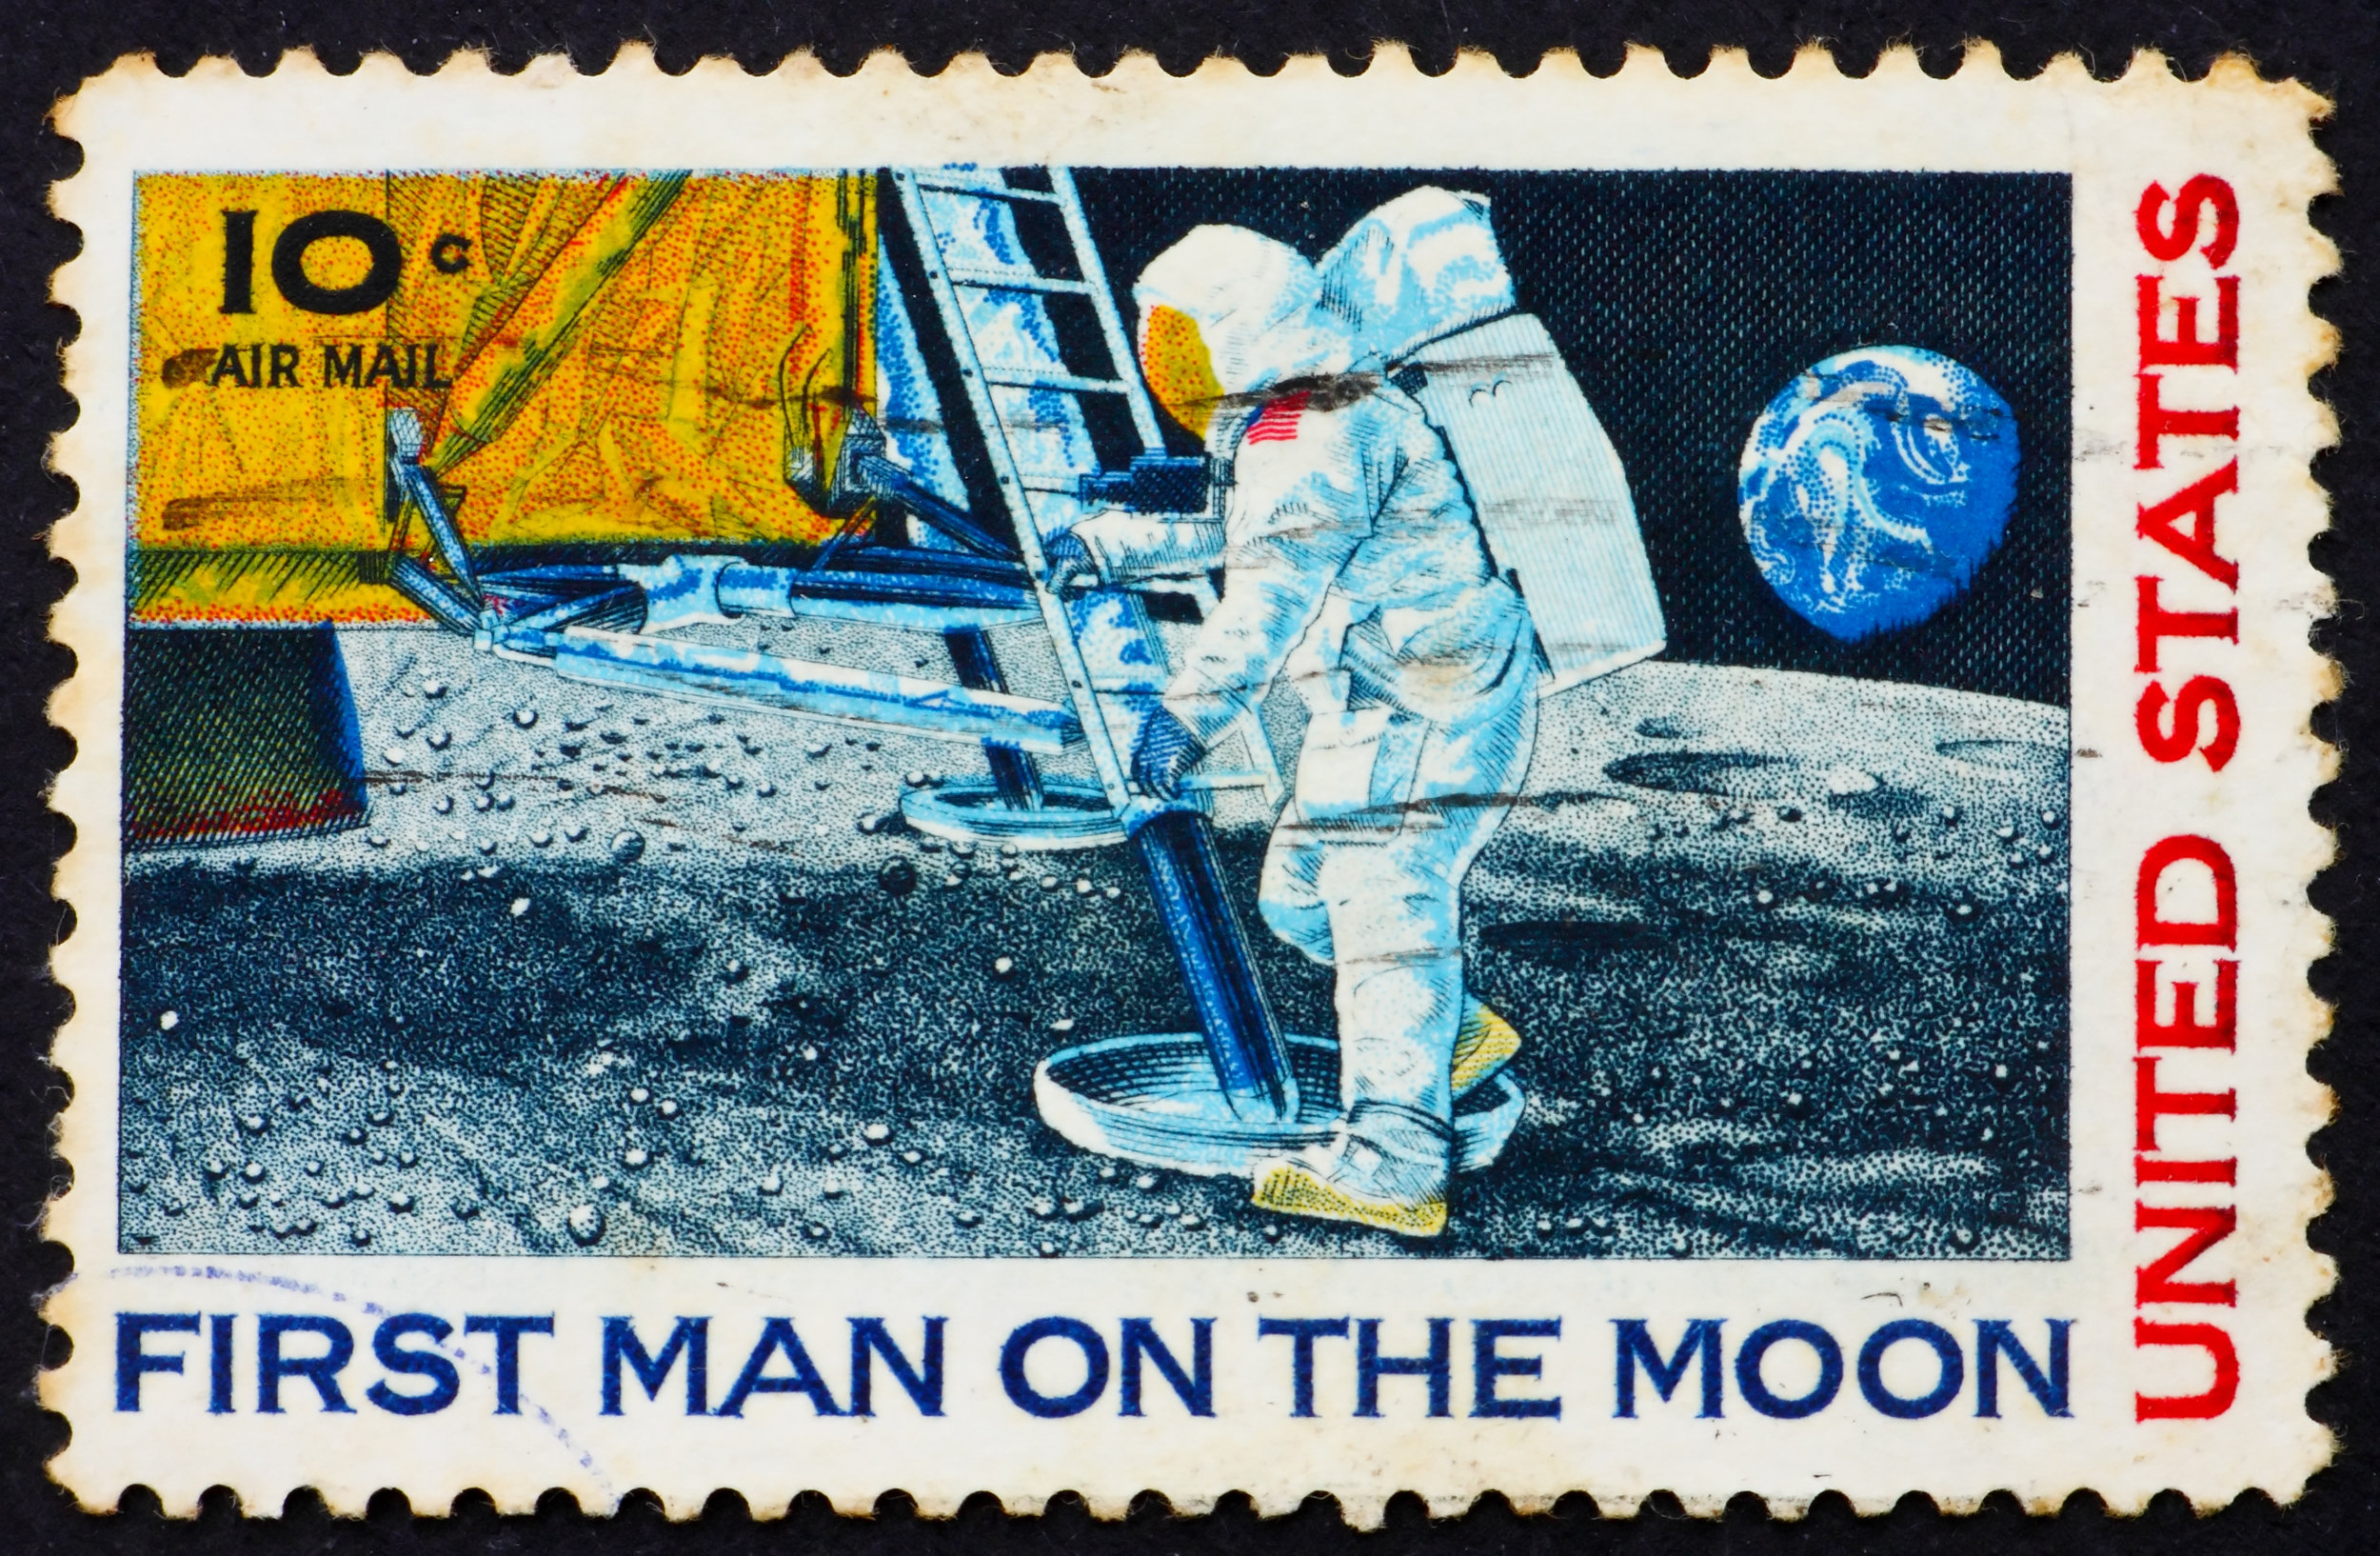 Getting to the moon required us to INVENT our way there. The physics didn't change, but technology evolved rapidly to deal with many diverse, interrelated problems.